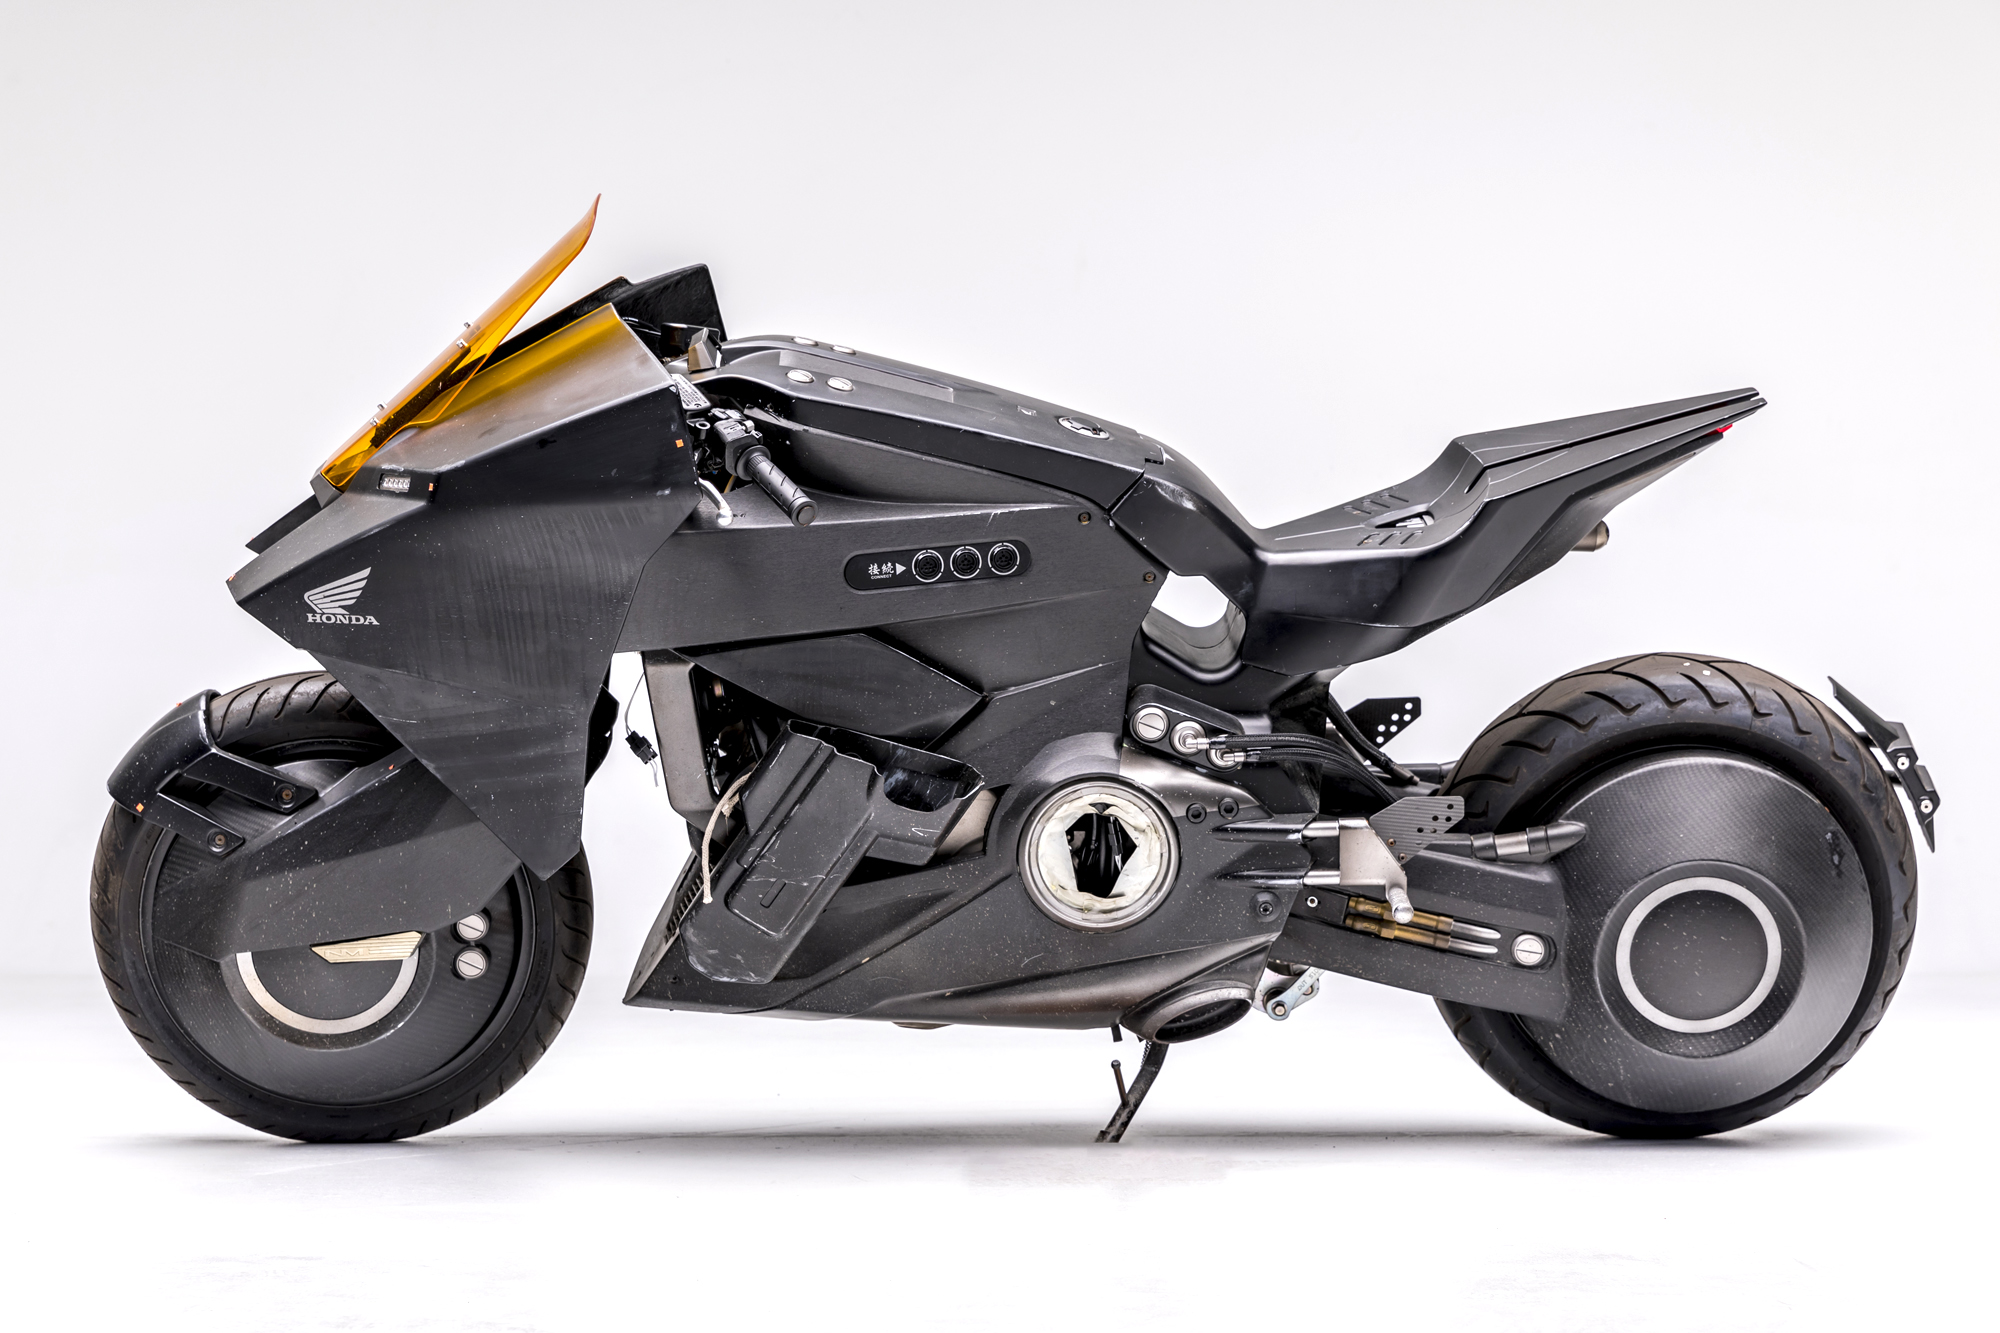 ghost-in-the-shell-honda-nm4-custom-1-2000